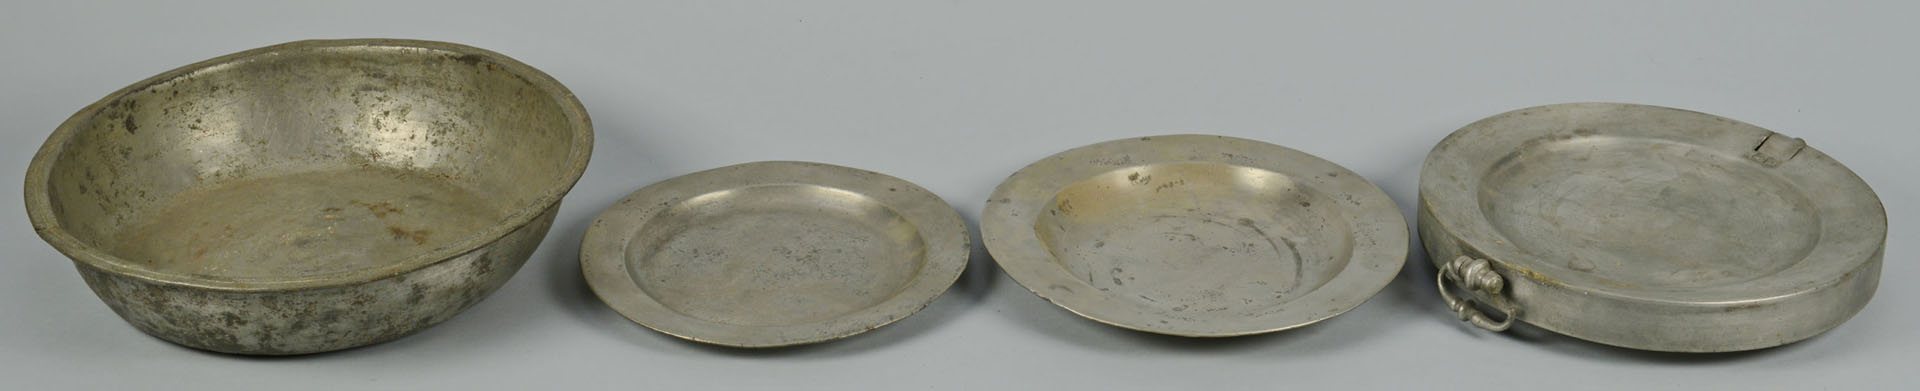 Lot 687: Grouping of Pewter Domes, Chargers, Plates